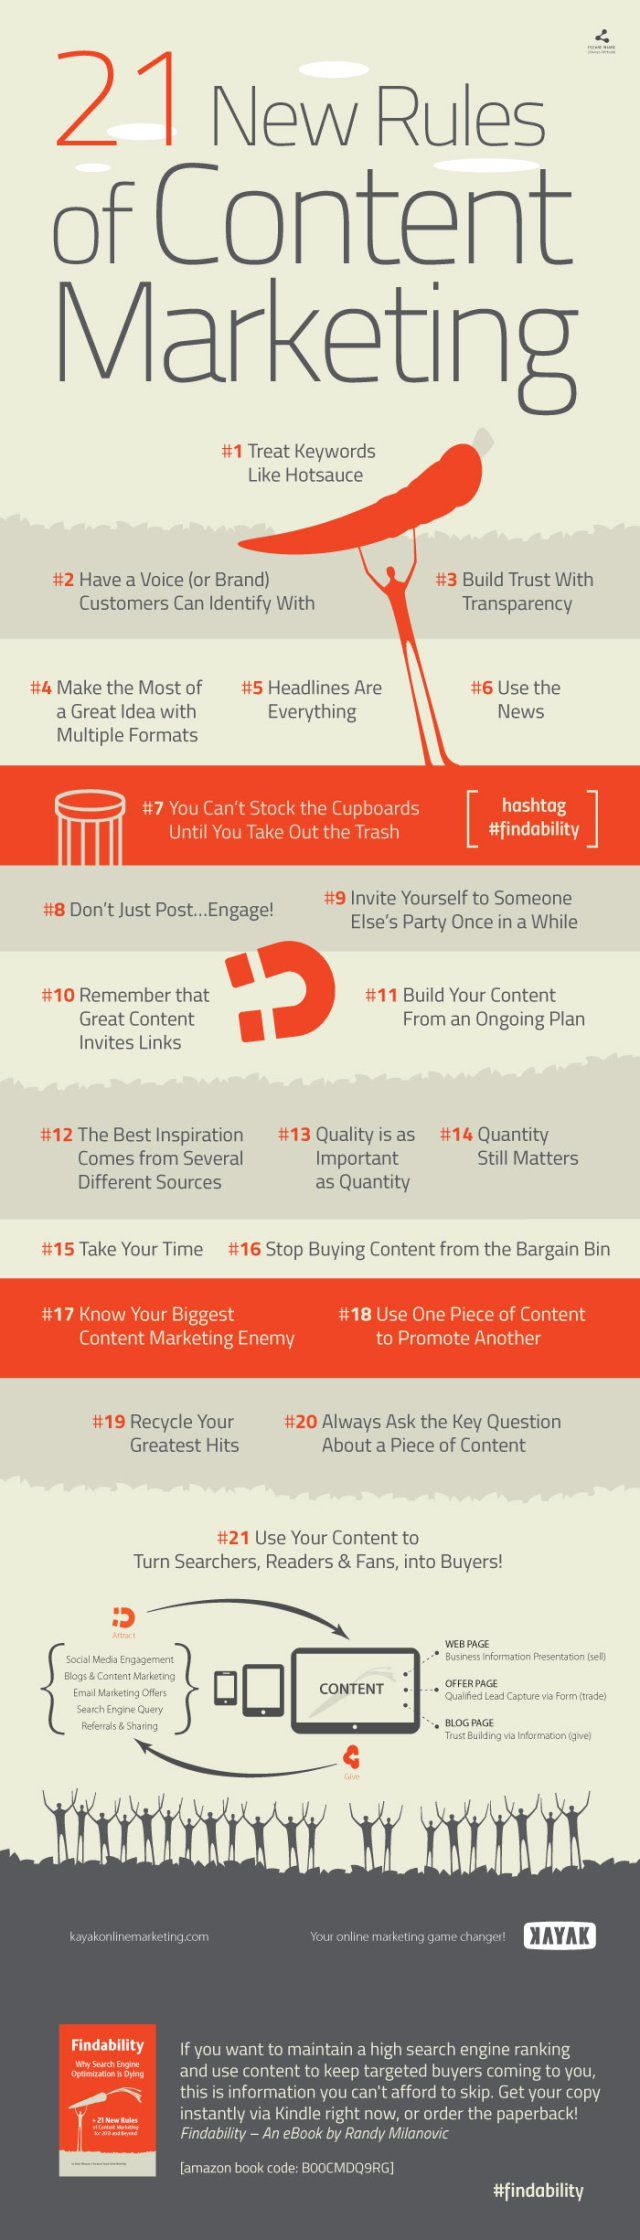 Psychology-Infographic-21-New-rules-of-Content-Marketing-infografia-infographic-marketing Psychology Infographic : 21 New rules of Content Marketing #infografia #infographic #marketing